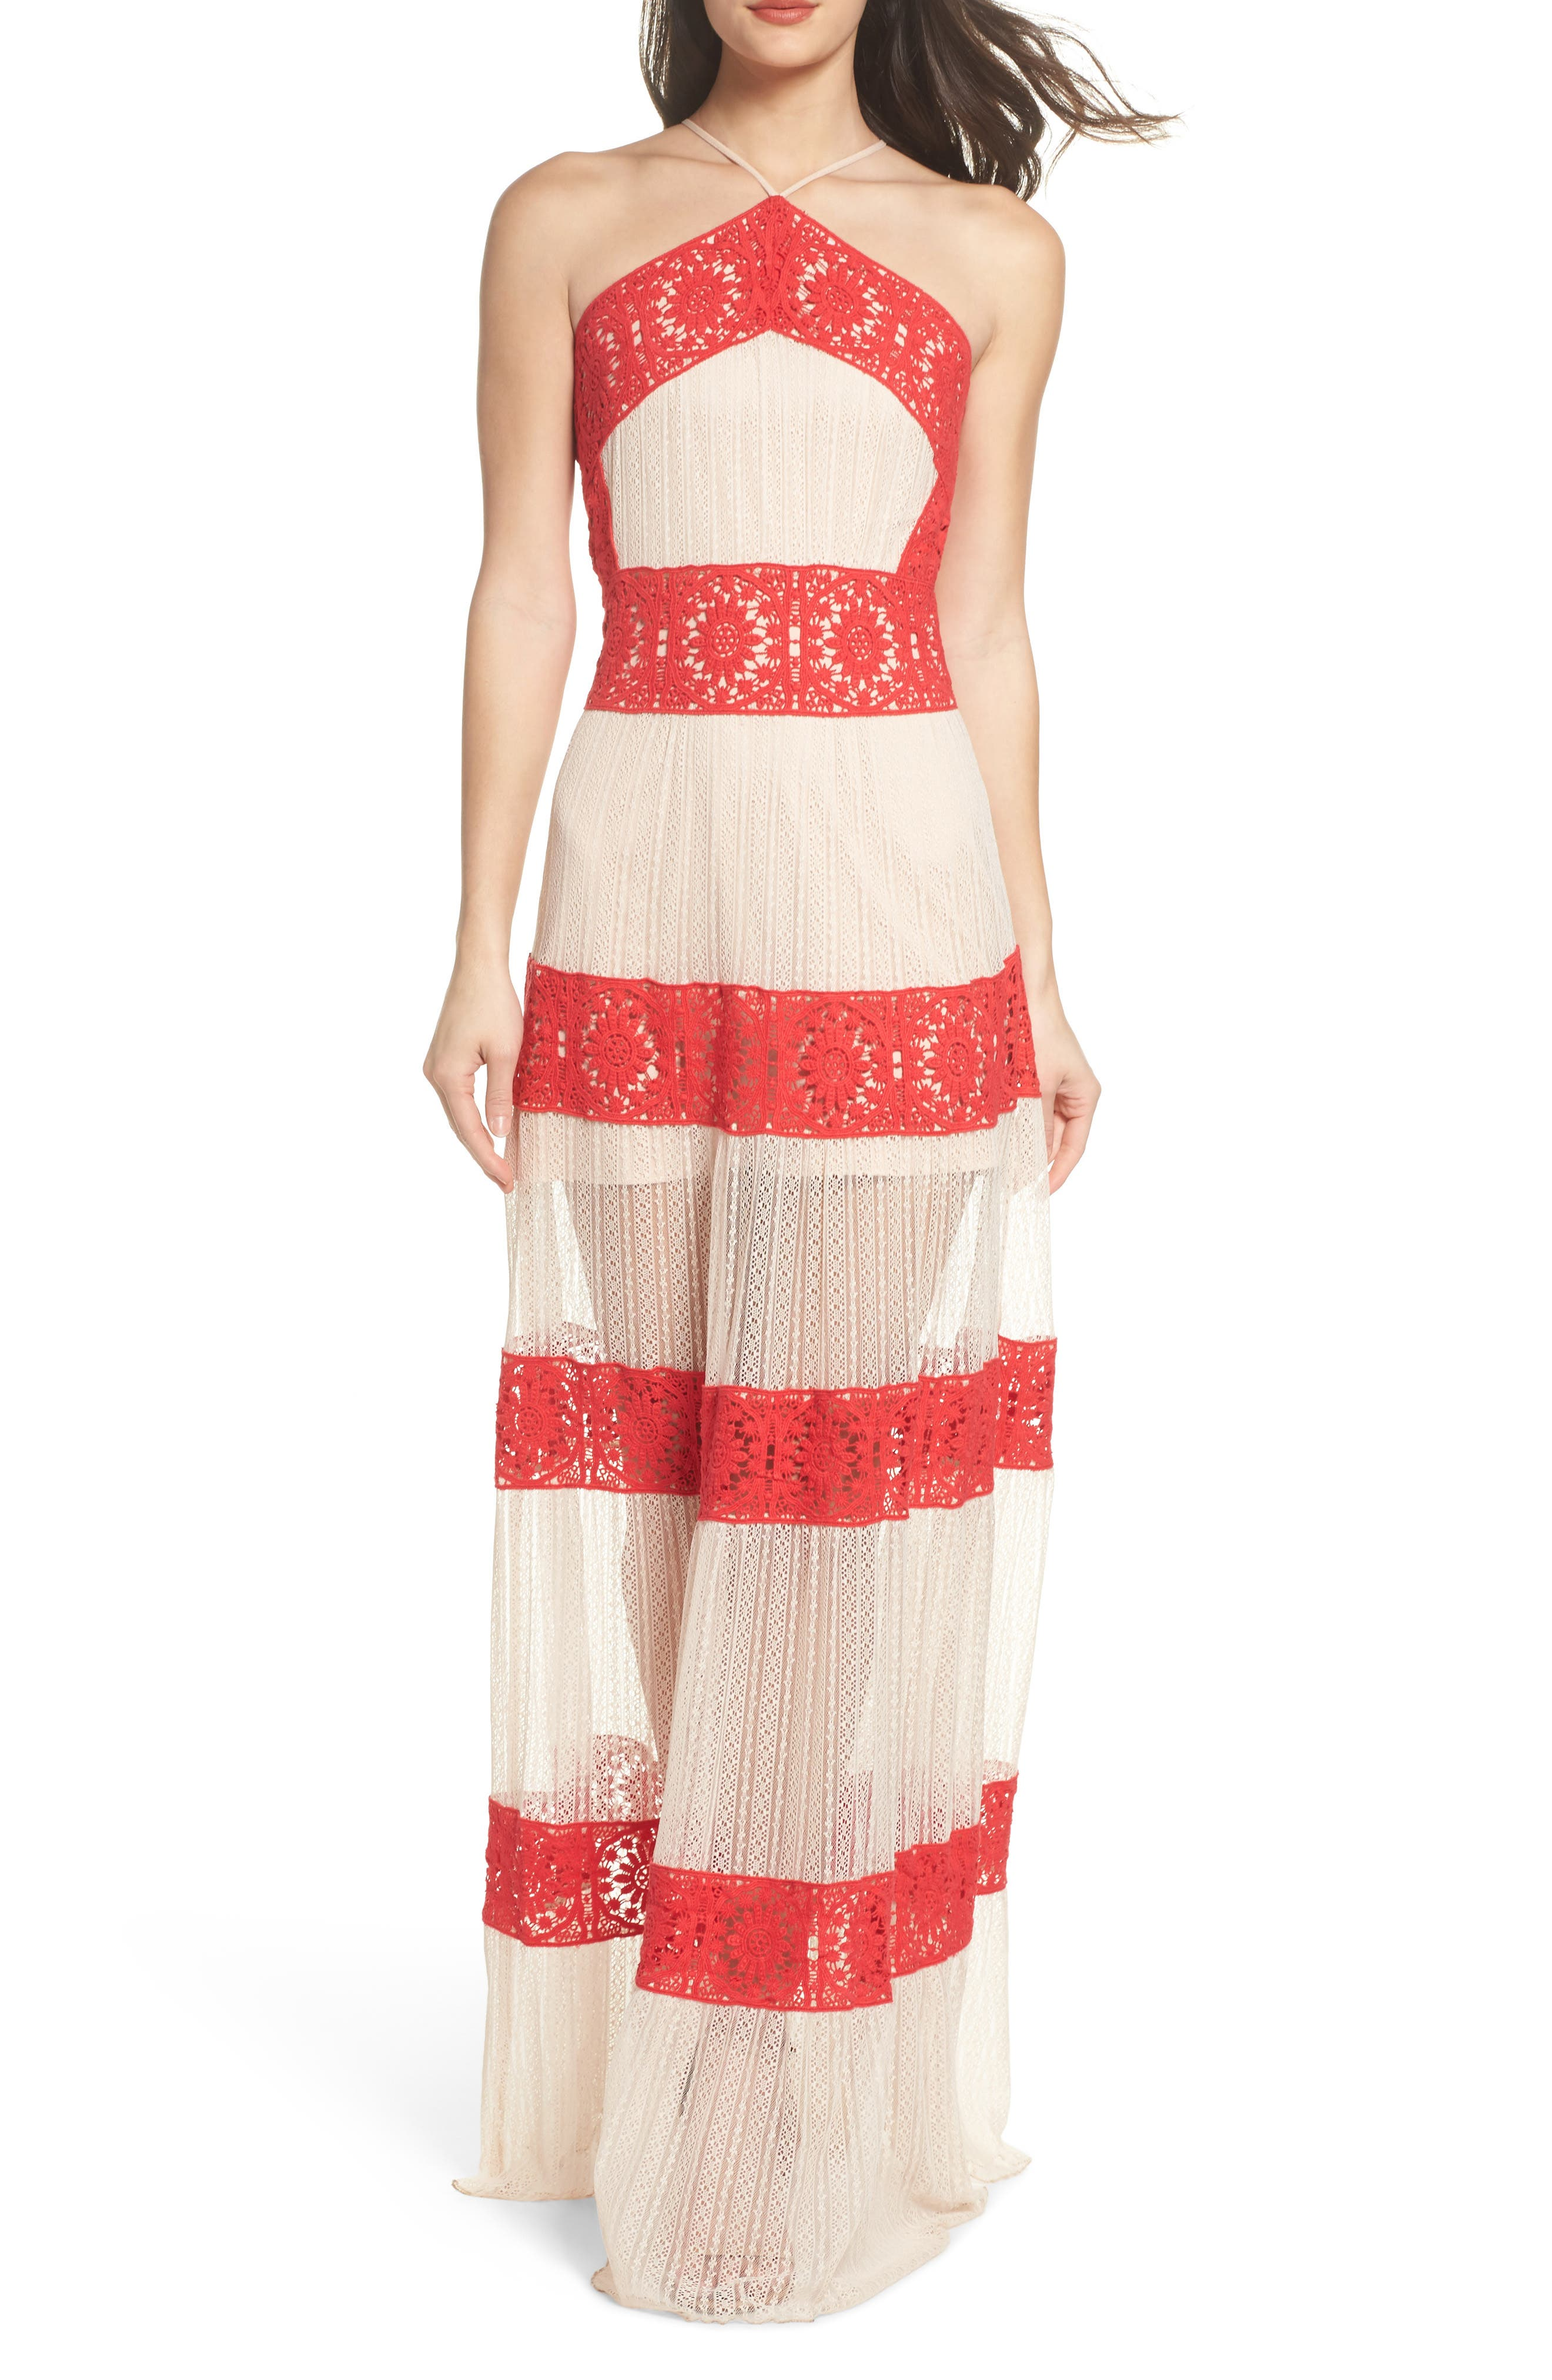 Ophelia Two-Tone Lace Maxi Dress,                             Main thumbnail 1, color,                             Red/ Nude